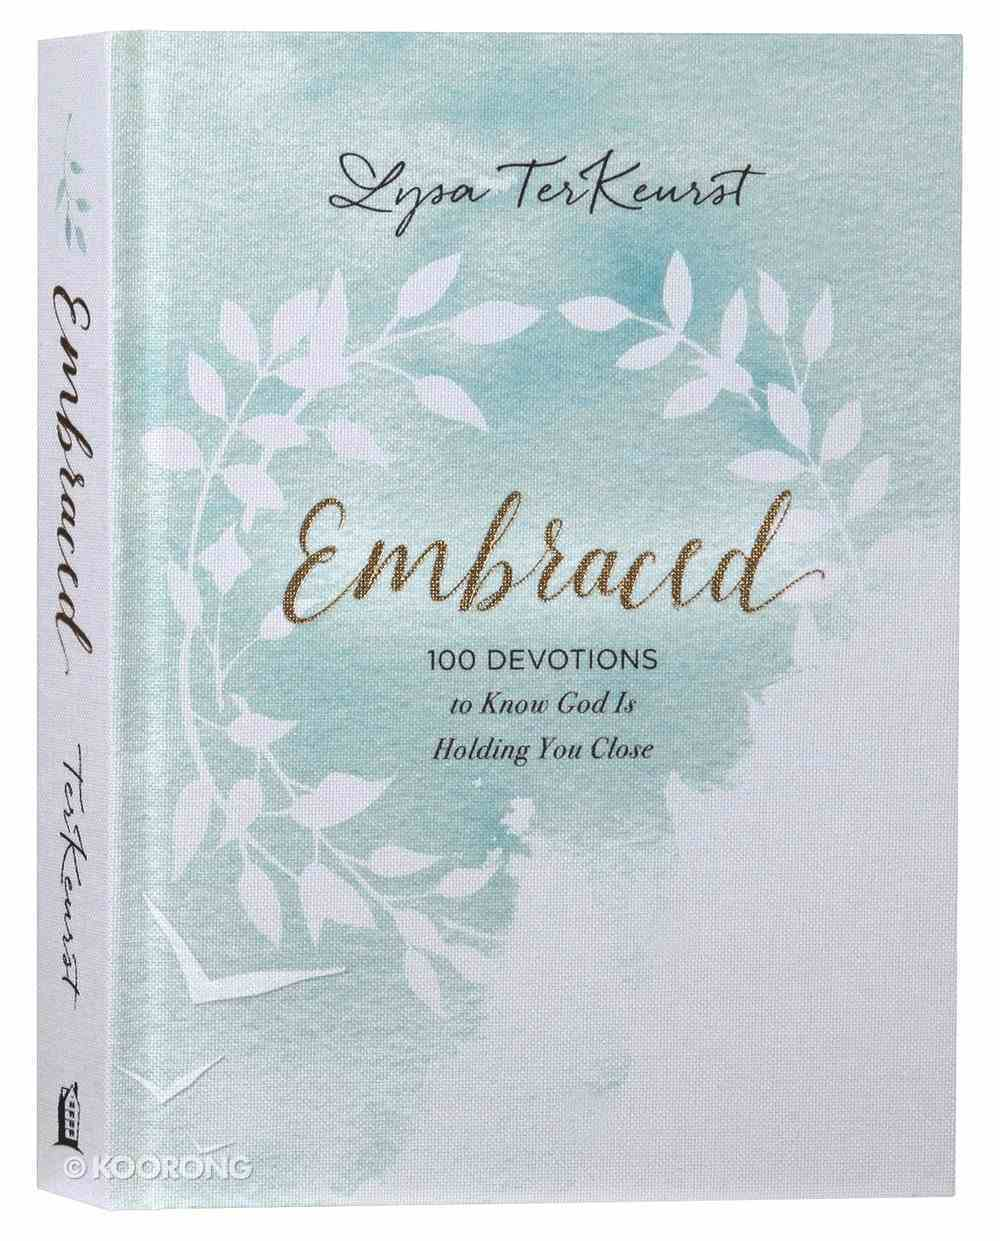 Embraced: 100 Devotions to Know God's Love Right Where You Are Hardback